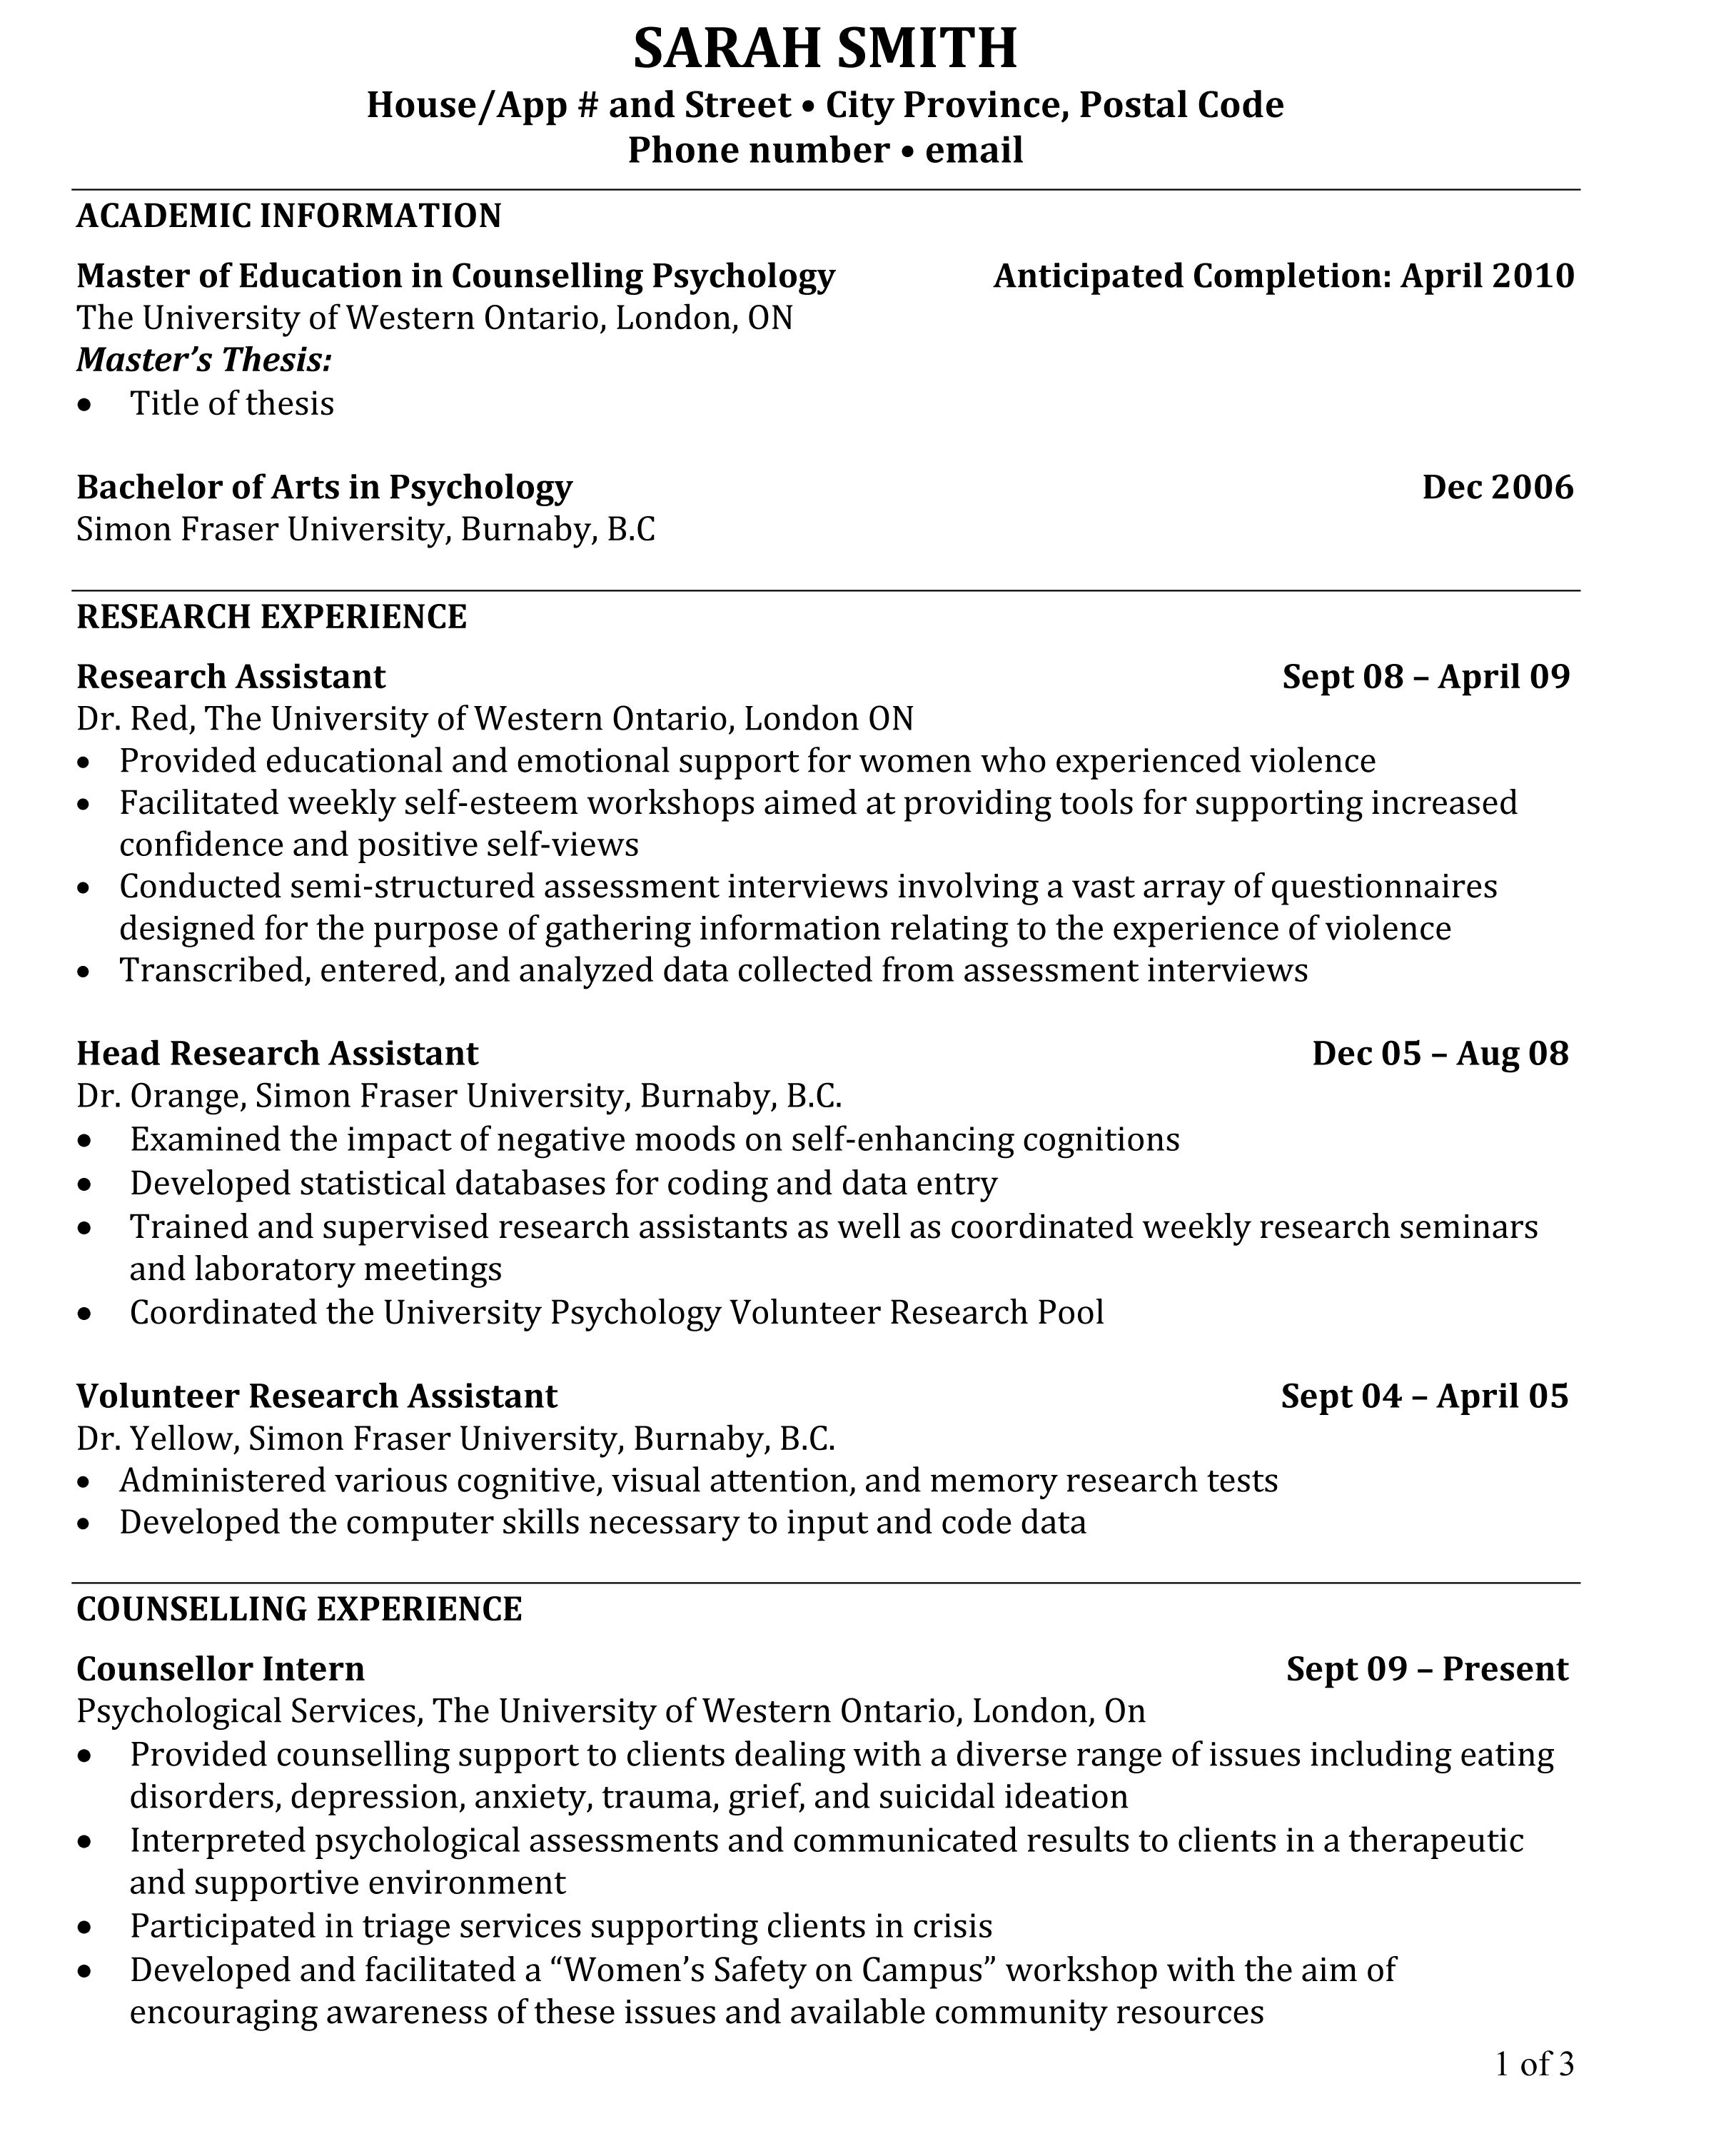 resume samples for graduate school terrific academic resume template for grad school 28 about remodel - Academic Resume Sample